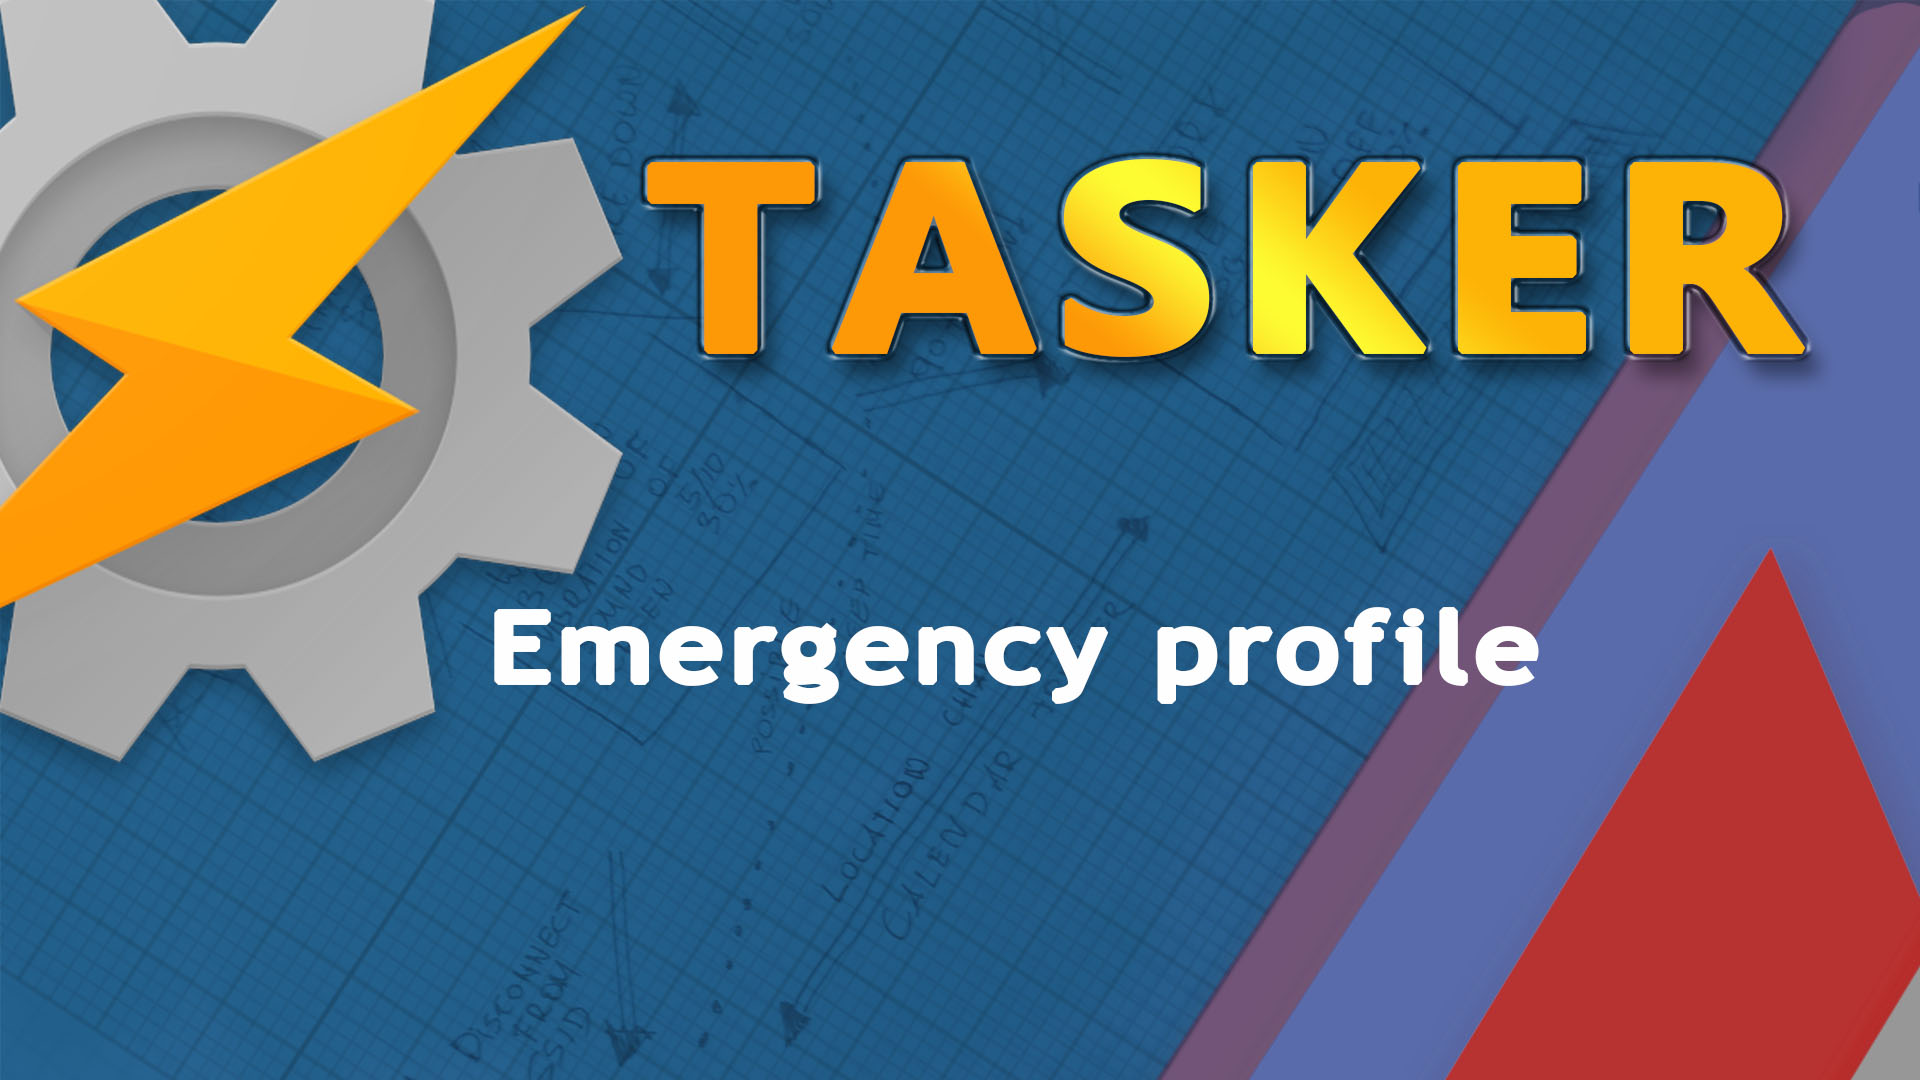 Tasker Emergency Profile